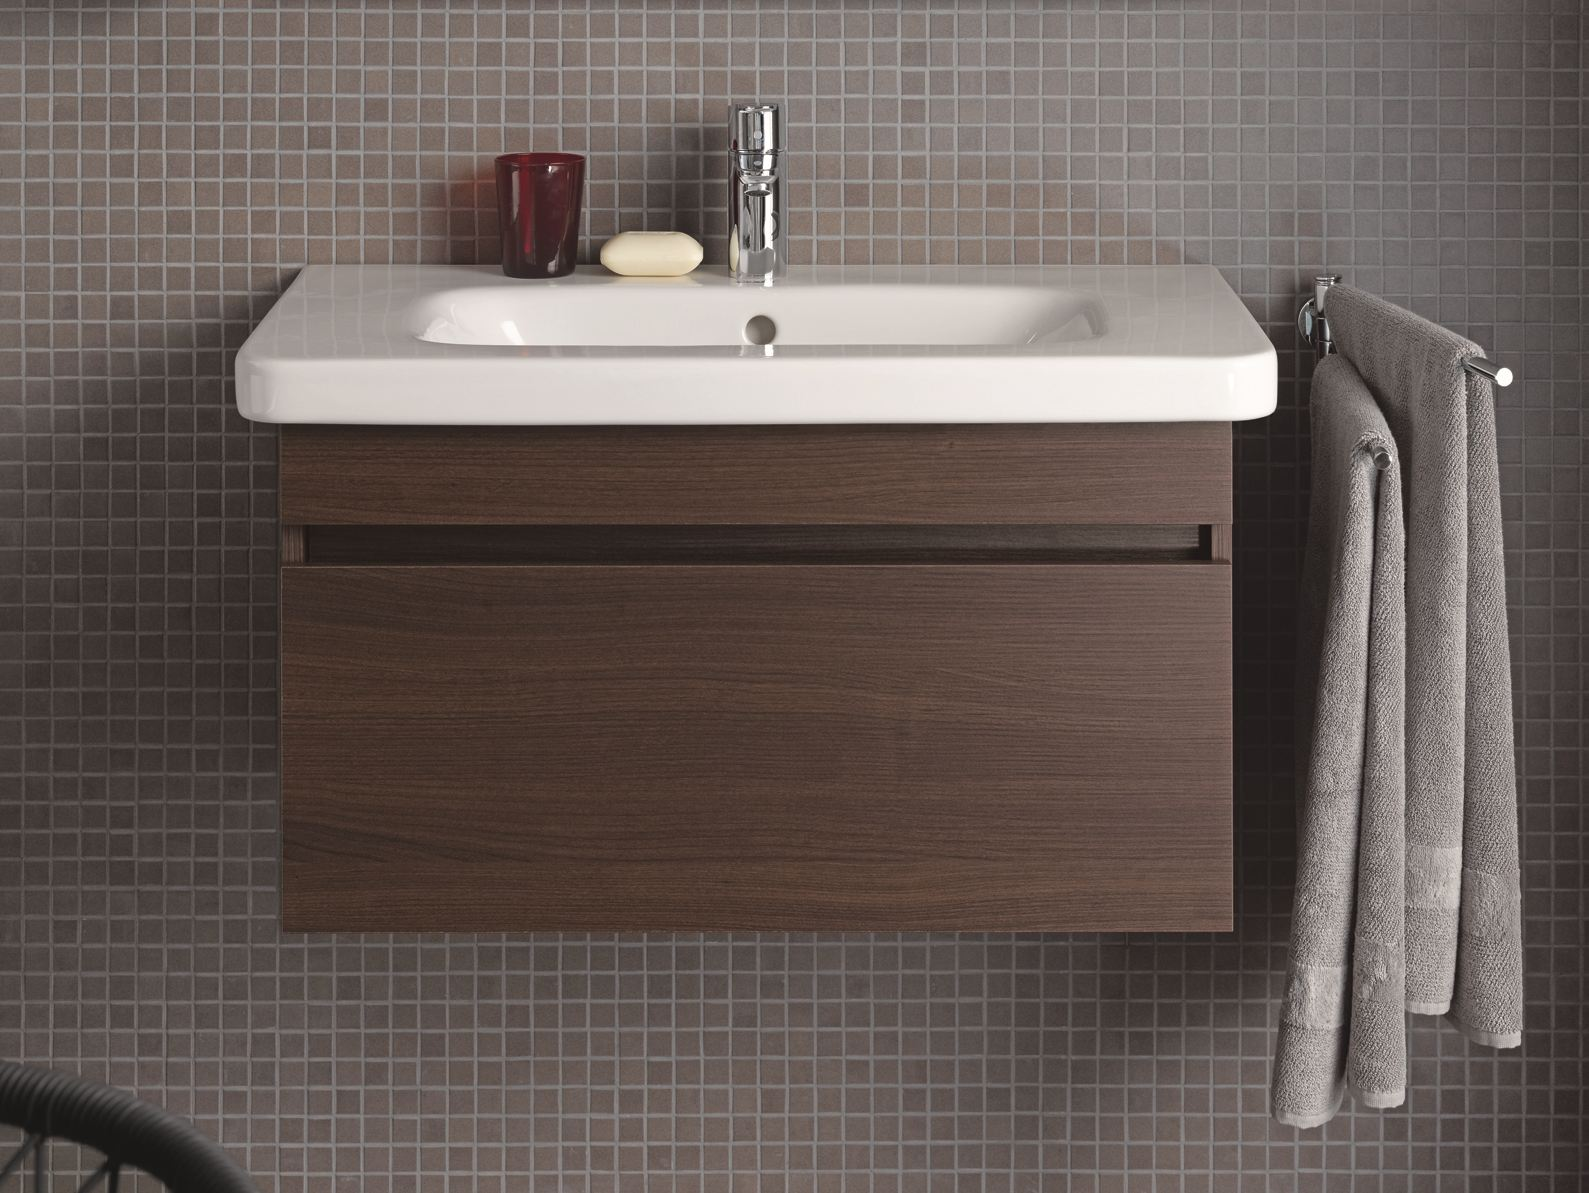 Durastyle mobile lavabo by duravit design matteo thun for Mobile lavabo